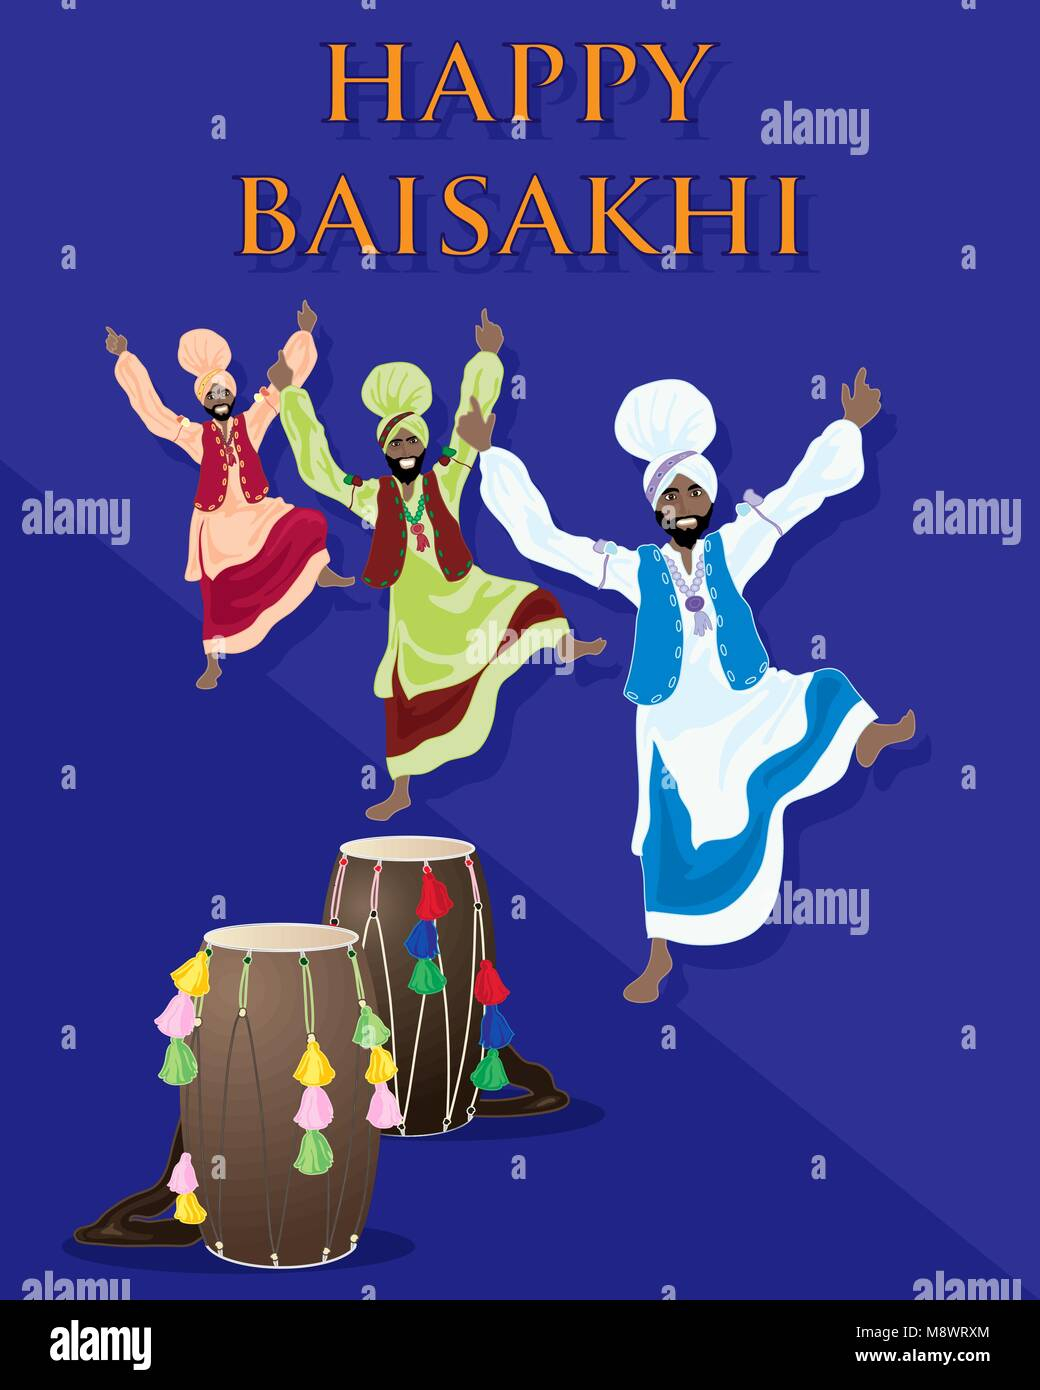 a vector illustration in eps 10 format of a Punjabi celebration greeting card with drums and dancers on a purple - Stock Vector